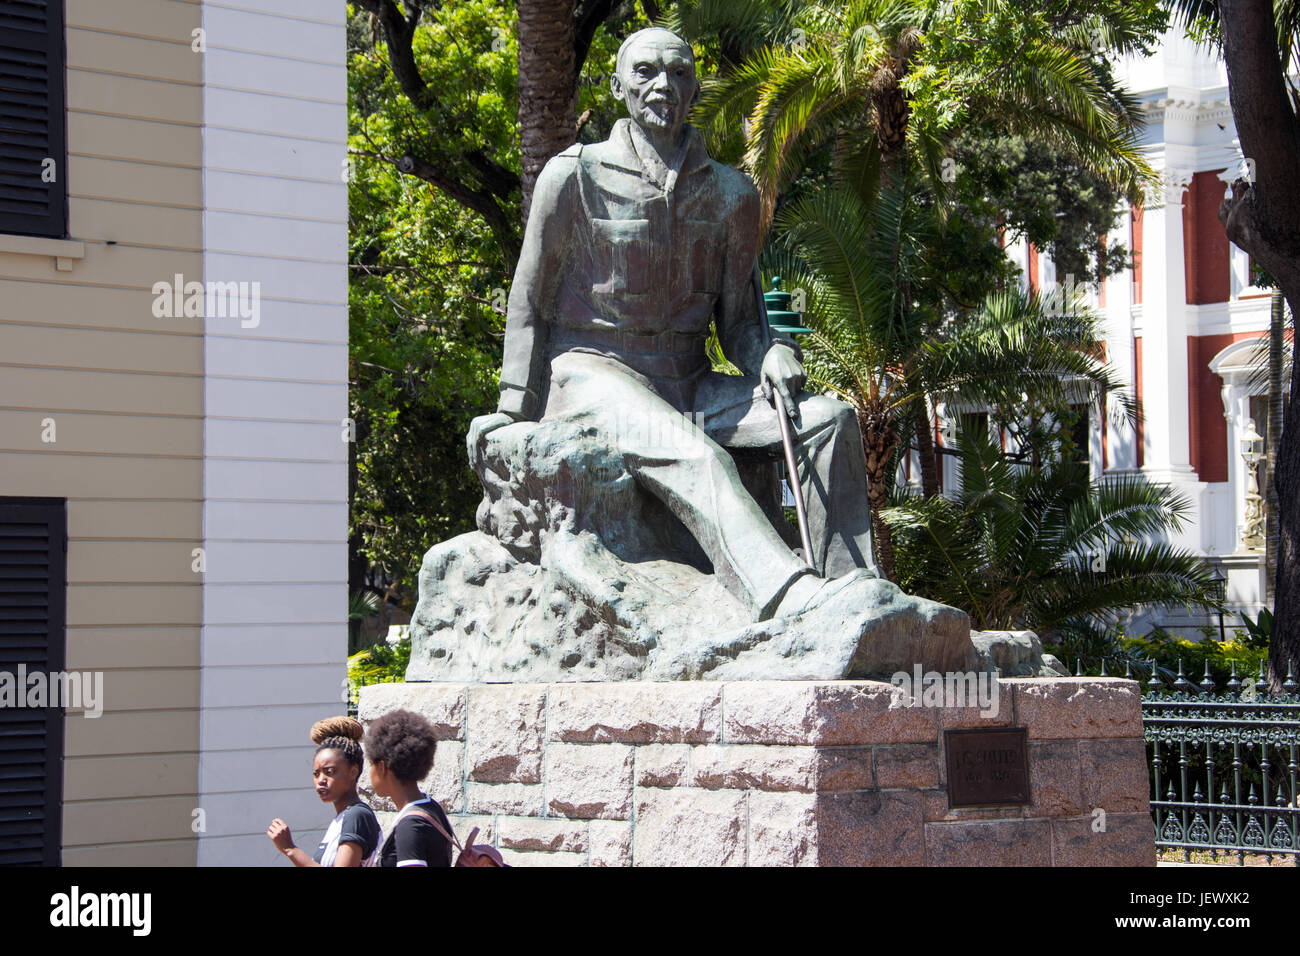 Sculpture of Prime Minister J.C. Smuts in Cape Town, South Africa - Stock Image